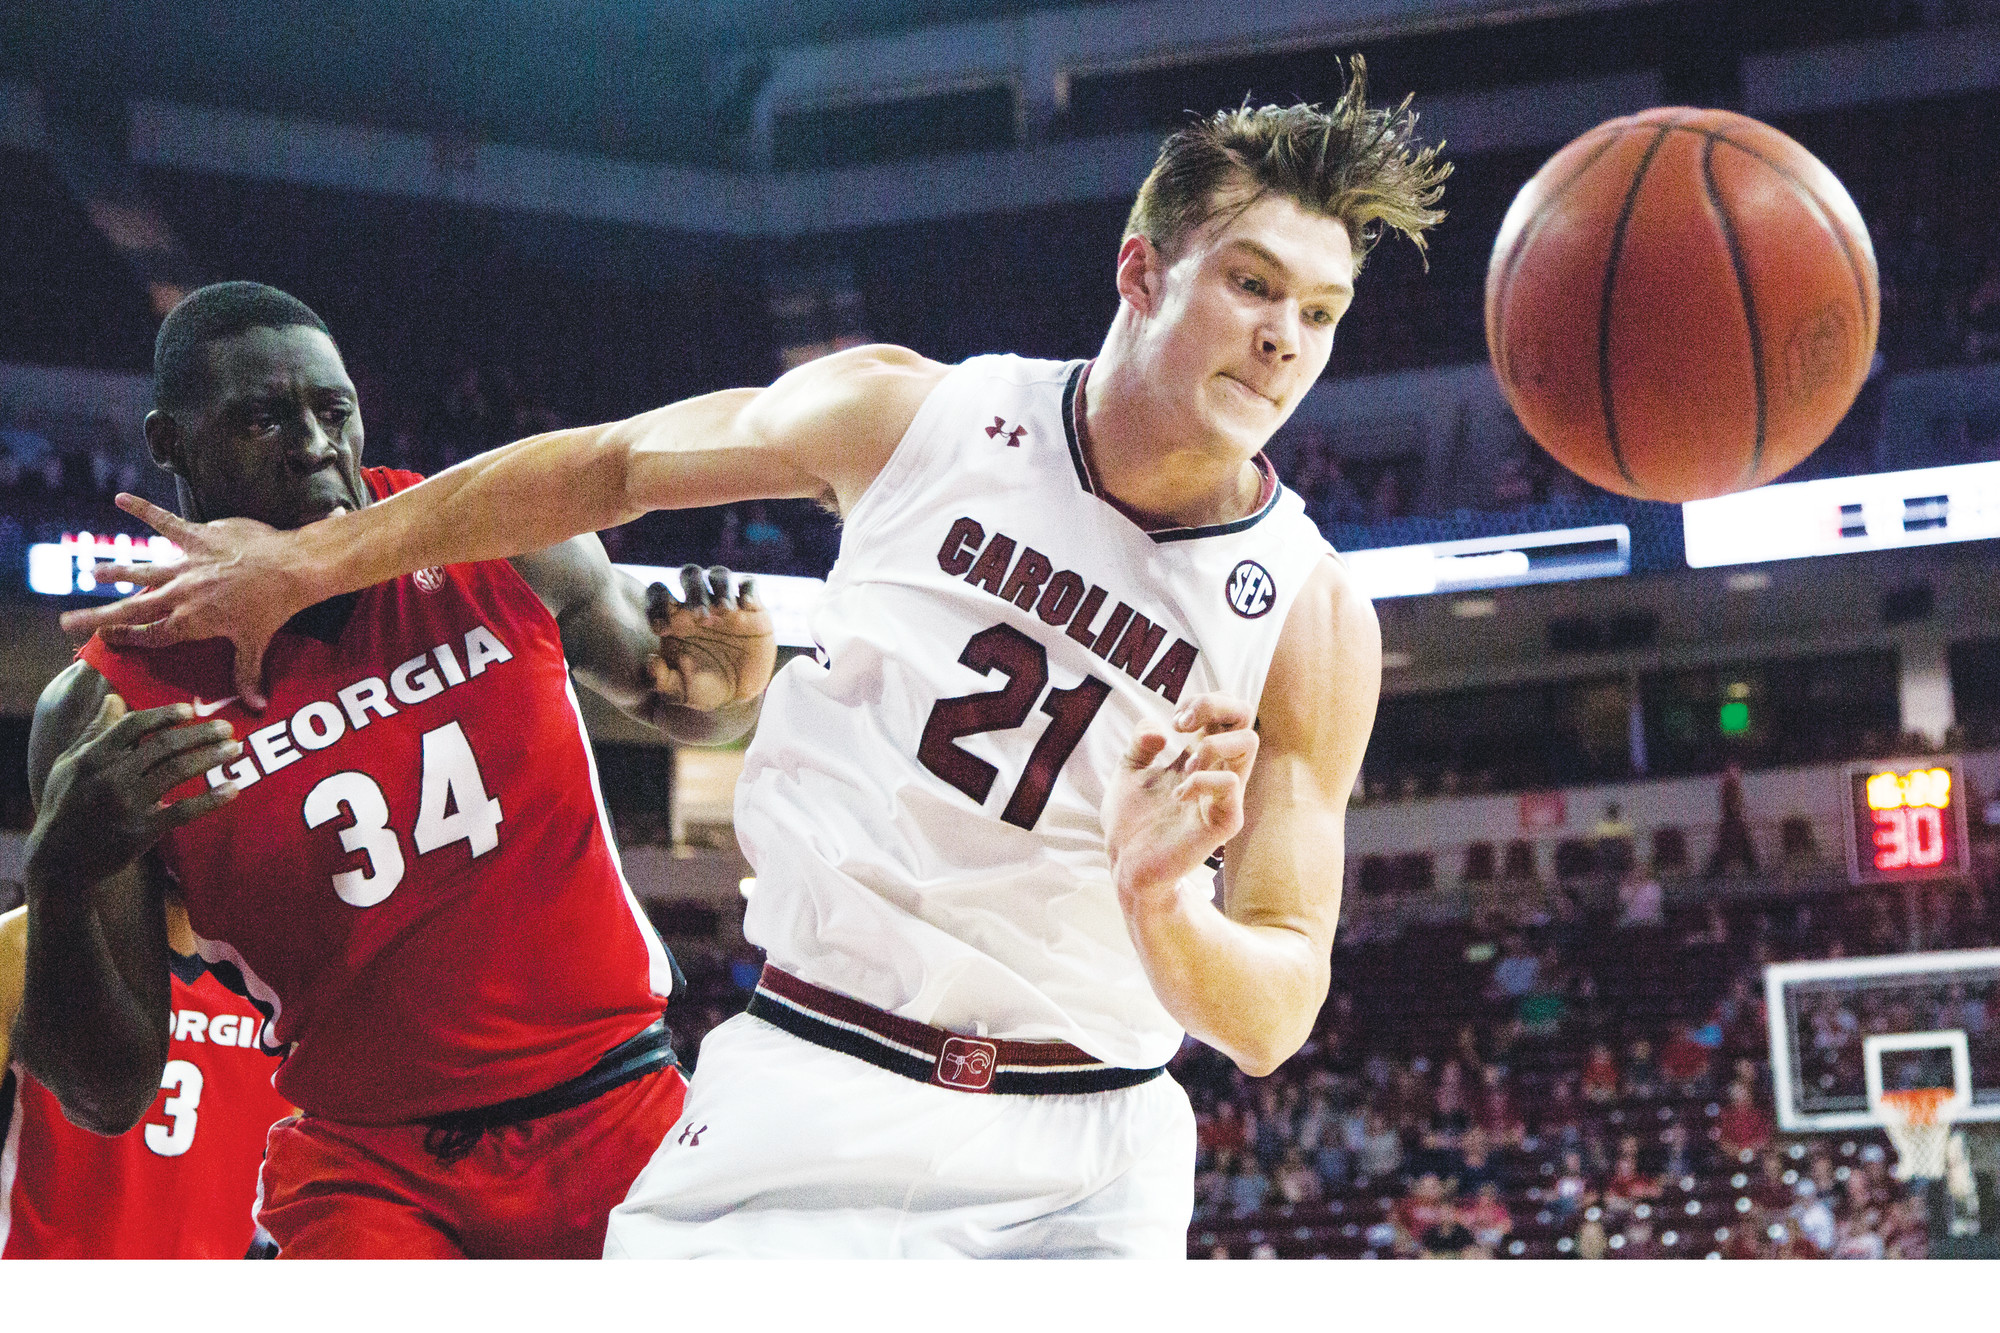 South Carolina forward Maik Kotsar (21) keeps Georgia forward Derek Ogbeide (34) away from the ball during the Gamecocks 66-57 victory over the Bulldogs on Wednesday in Columbia.